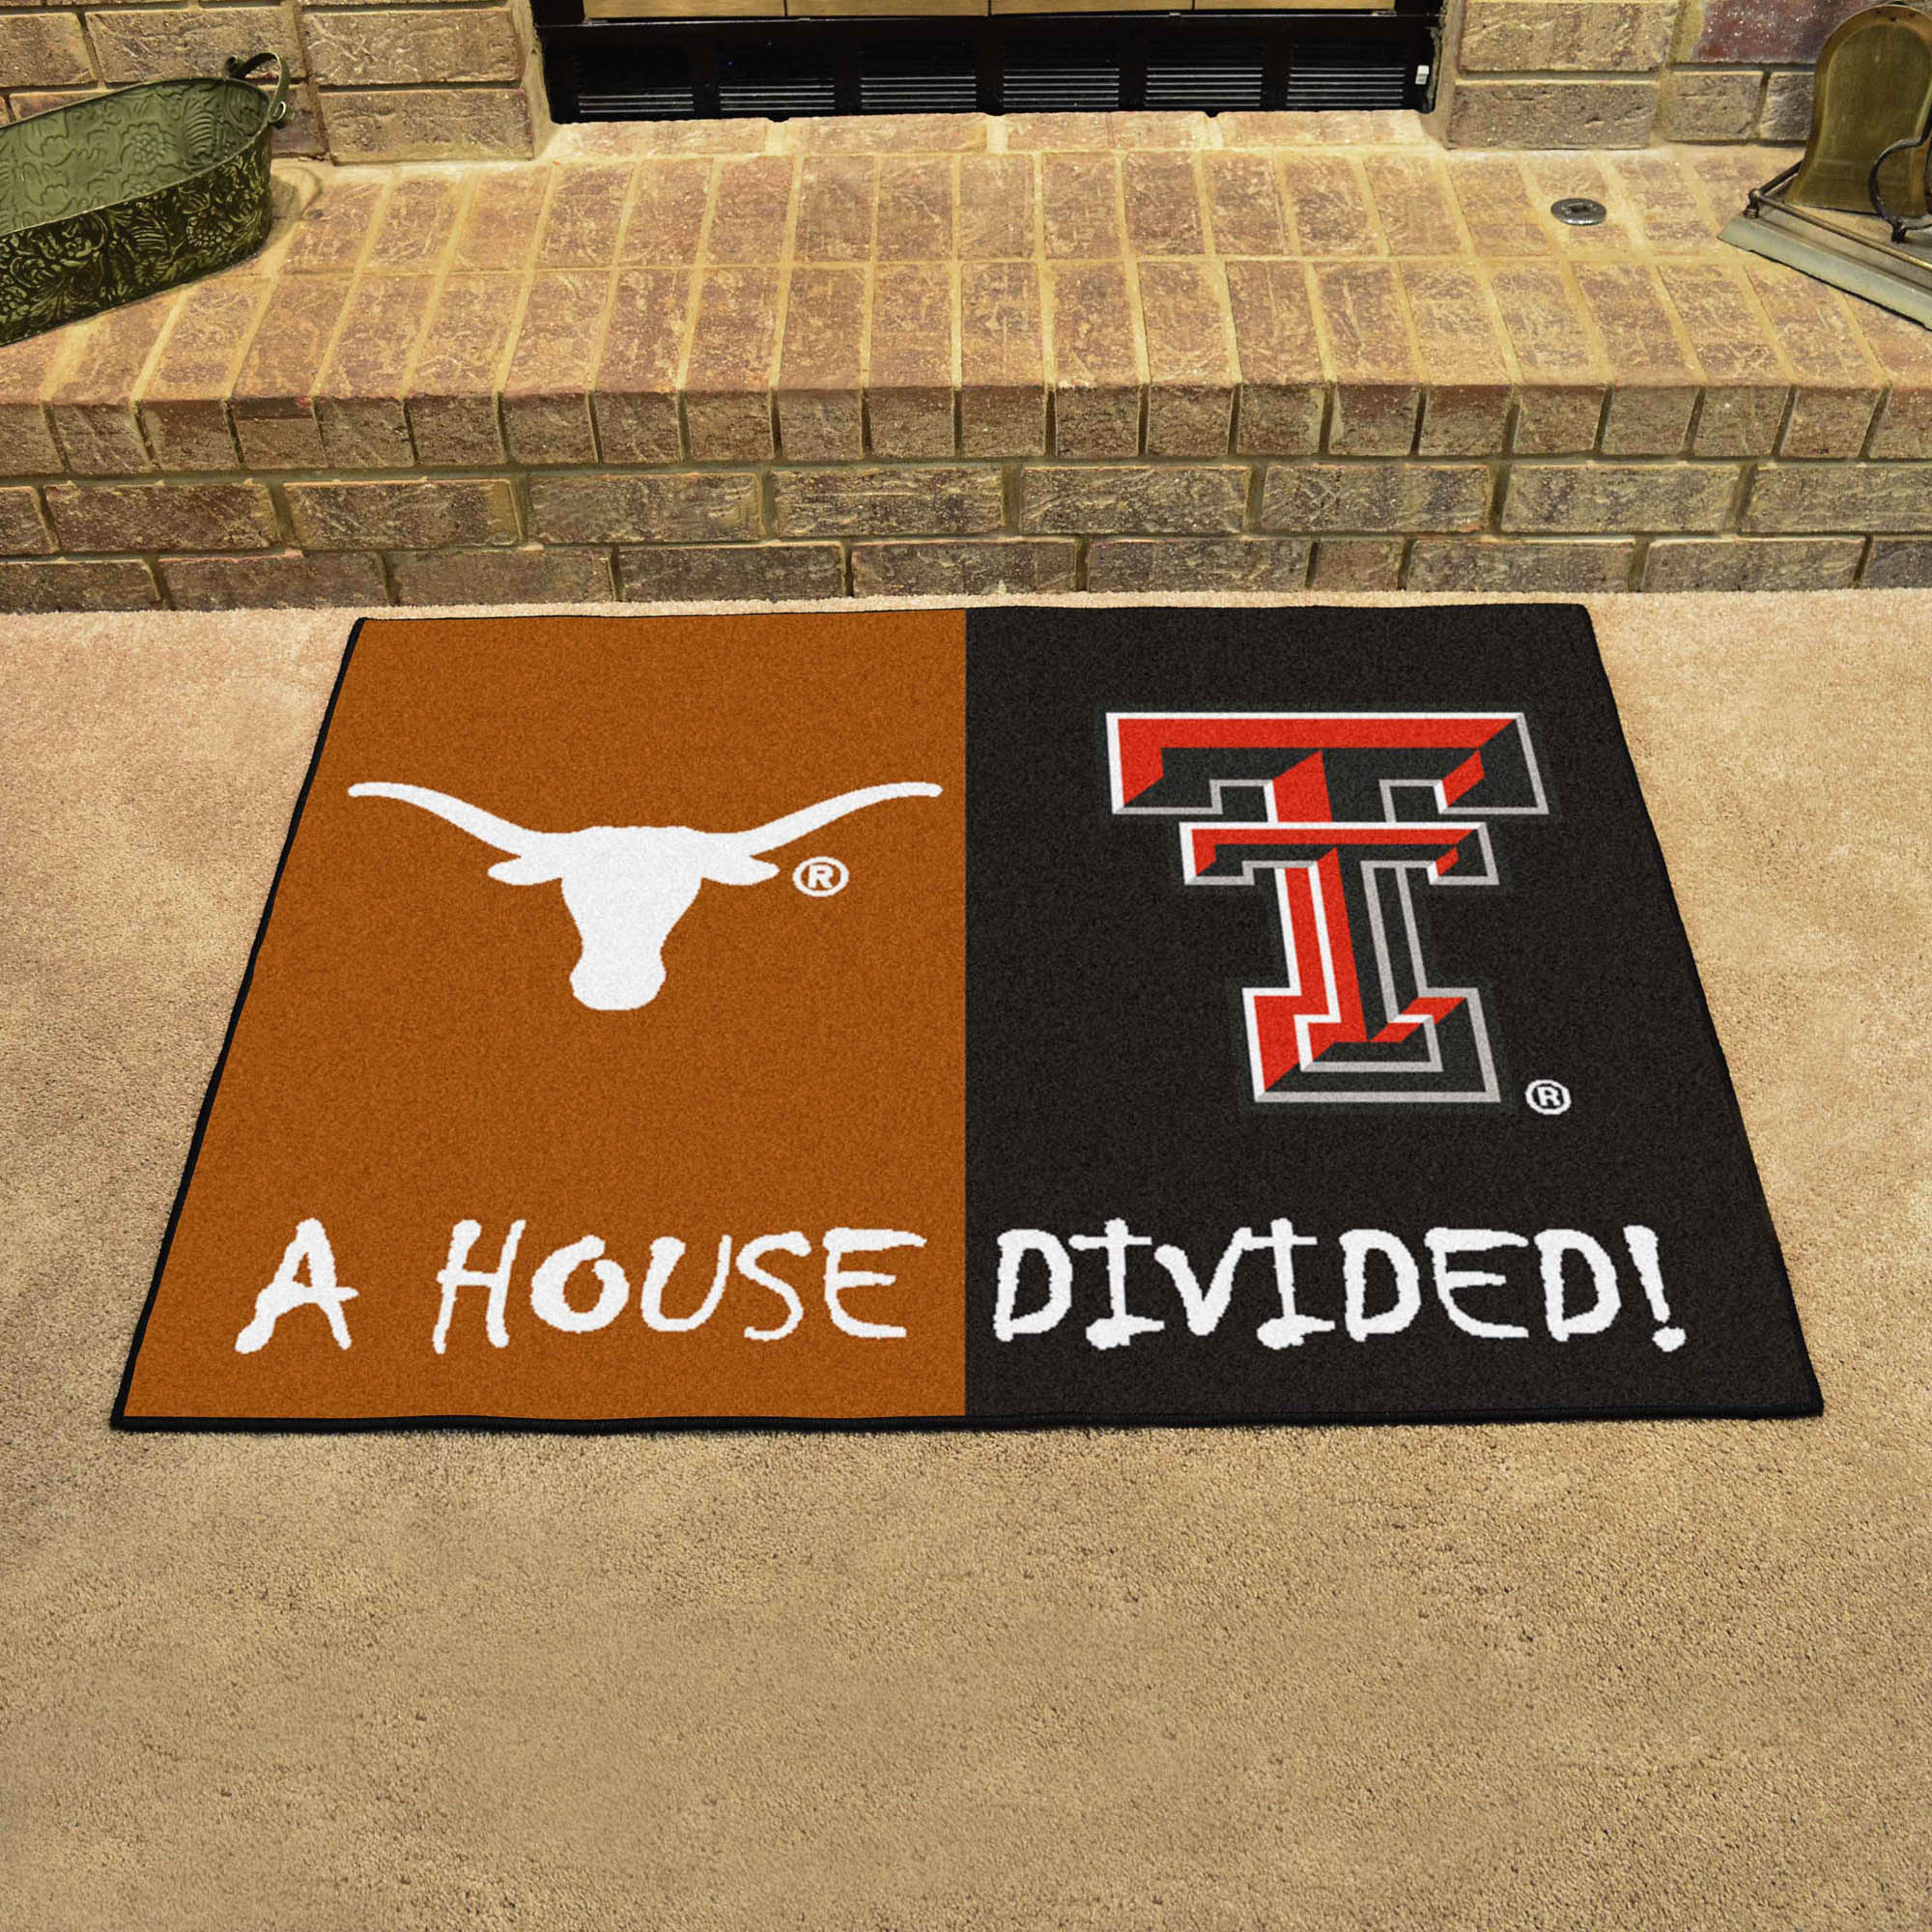 NCAA House Divided Rivalry Rug Texas Longhorns - Texas Tech Red Raiders